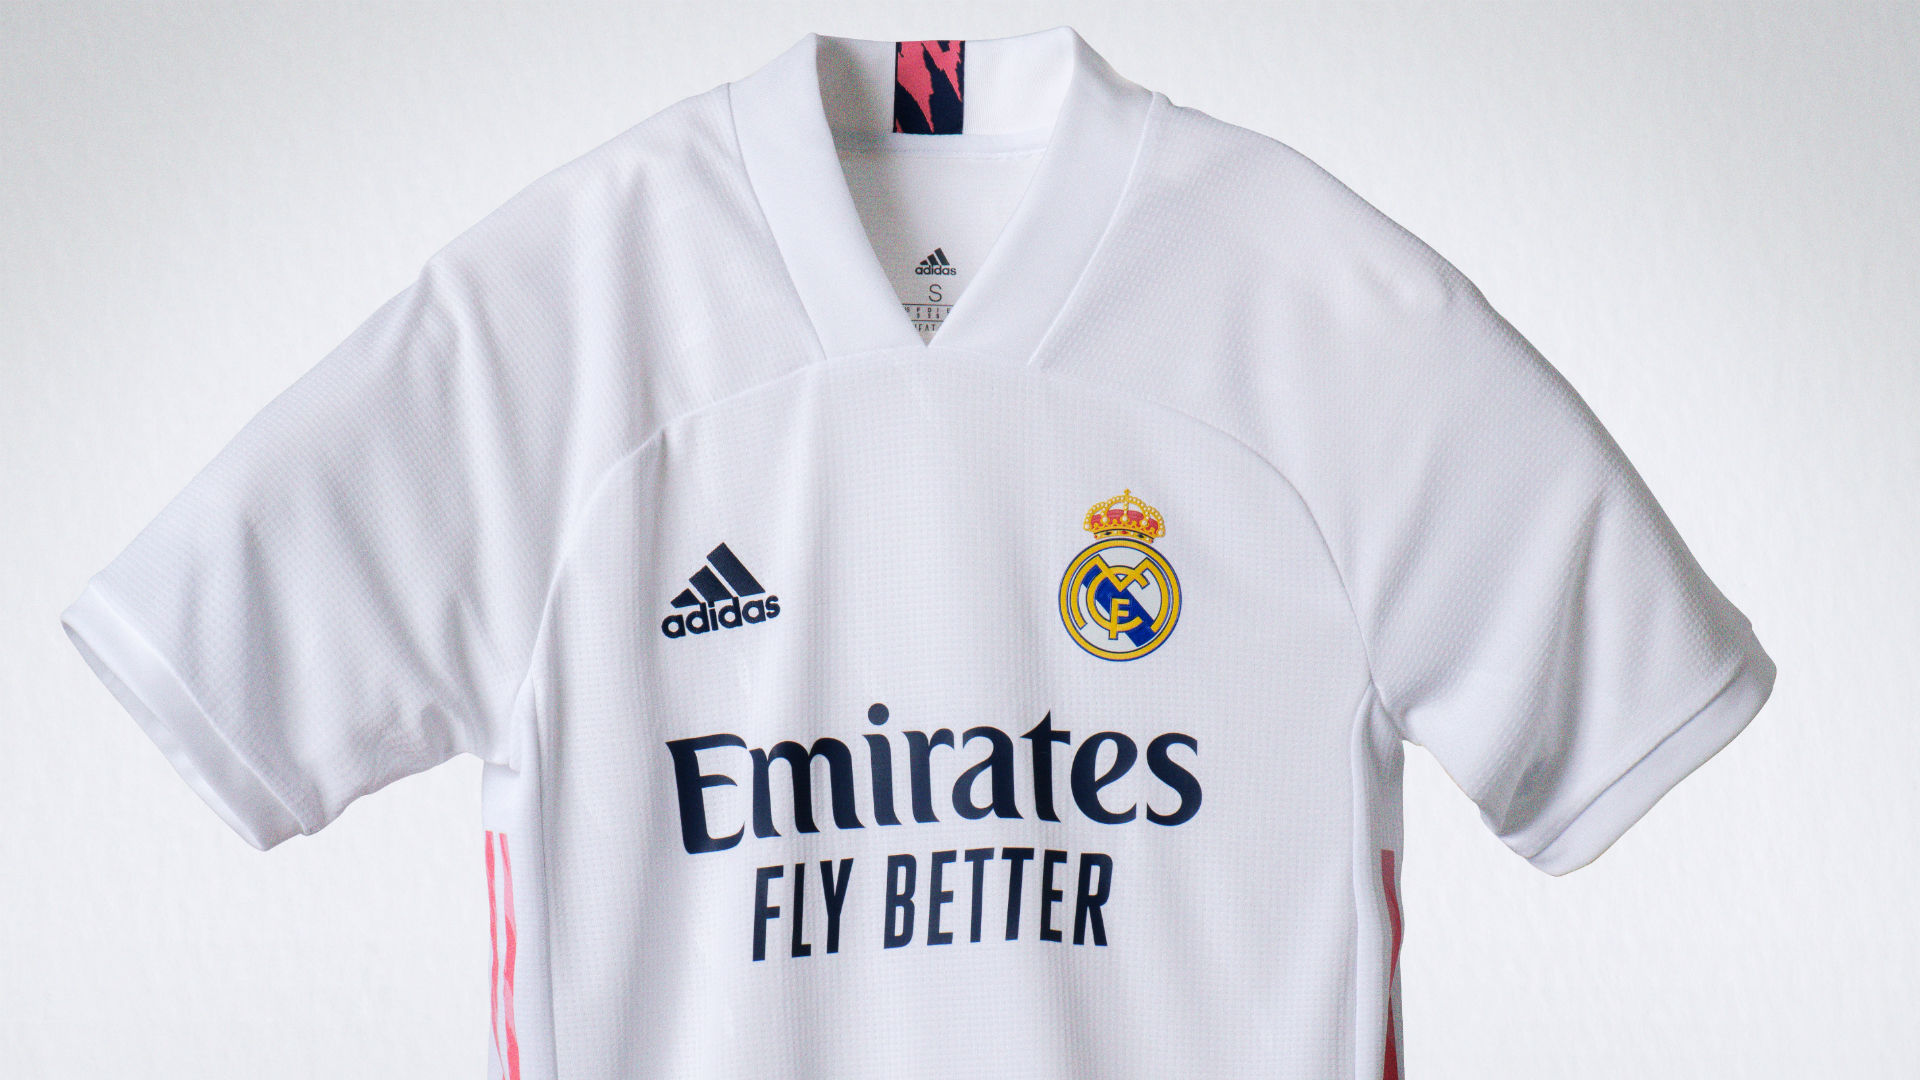 Real Madrid S 2020 21 Kit New Home And Away Jersey Styles And Release Dates Goal Com